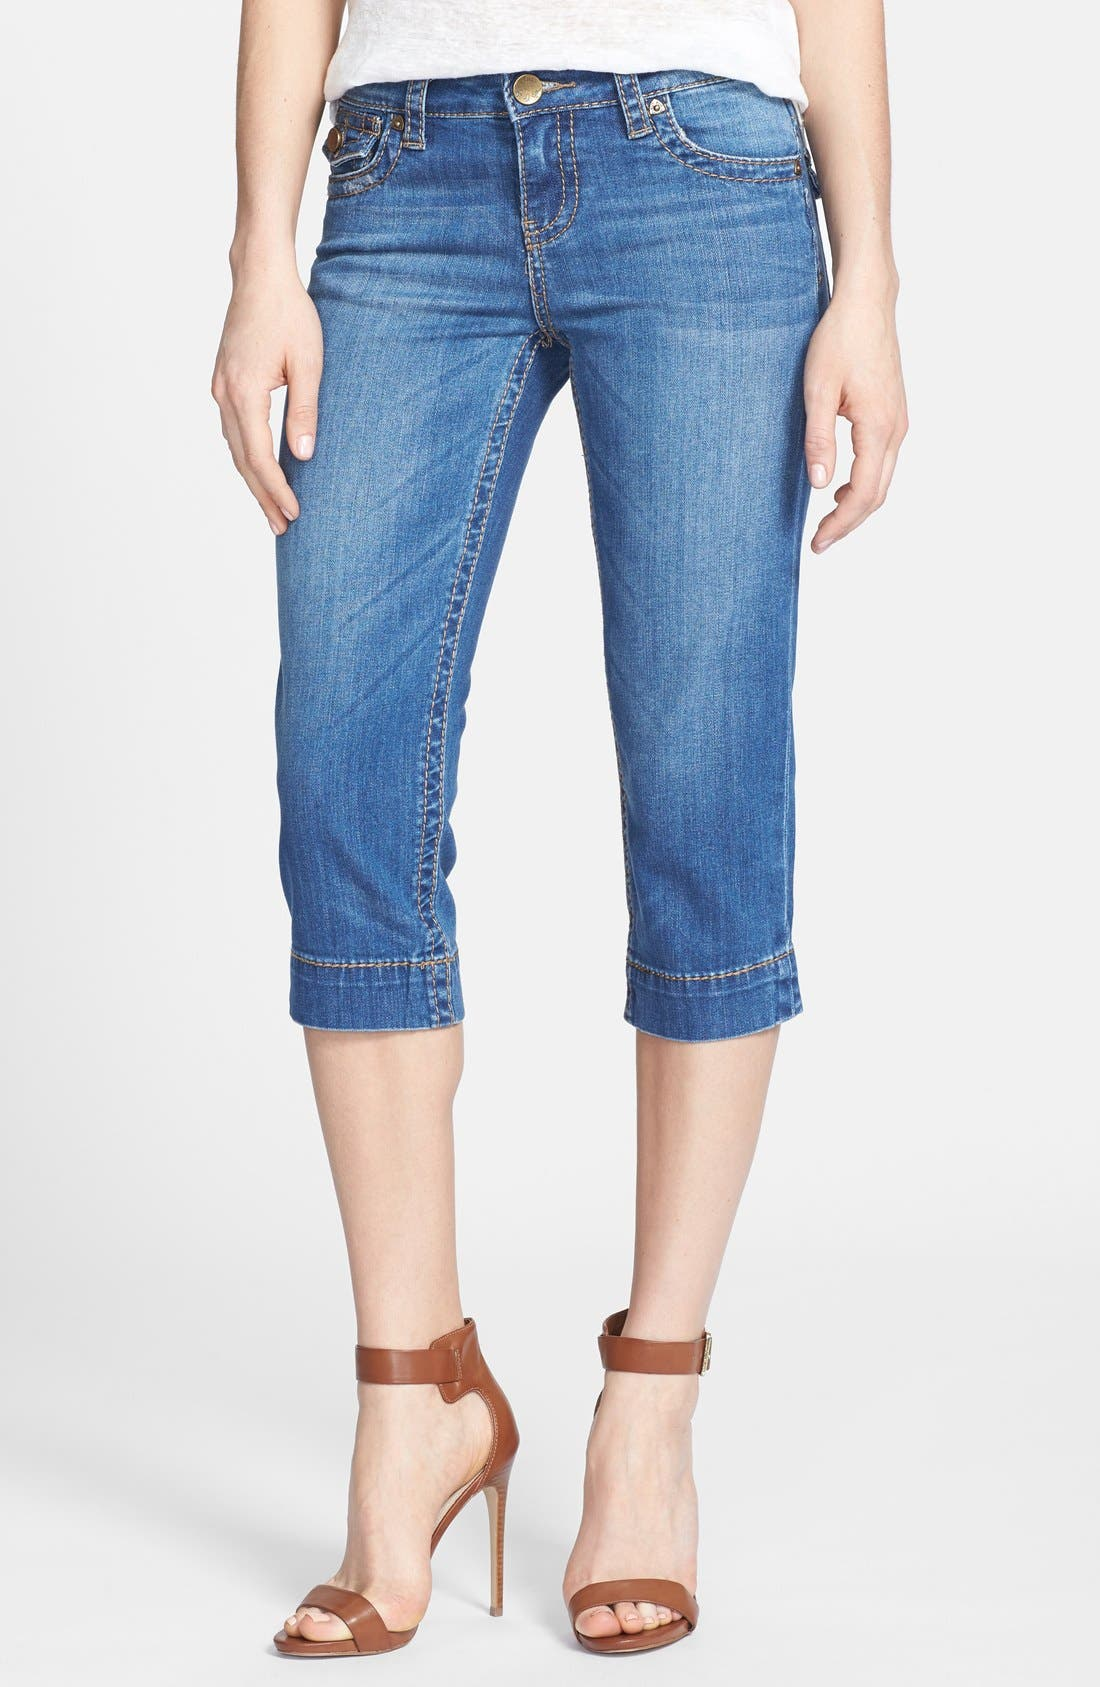 Main Image - KUT from the Kloth 'Natalie' Crop Jeans (Function)